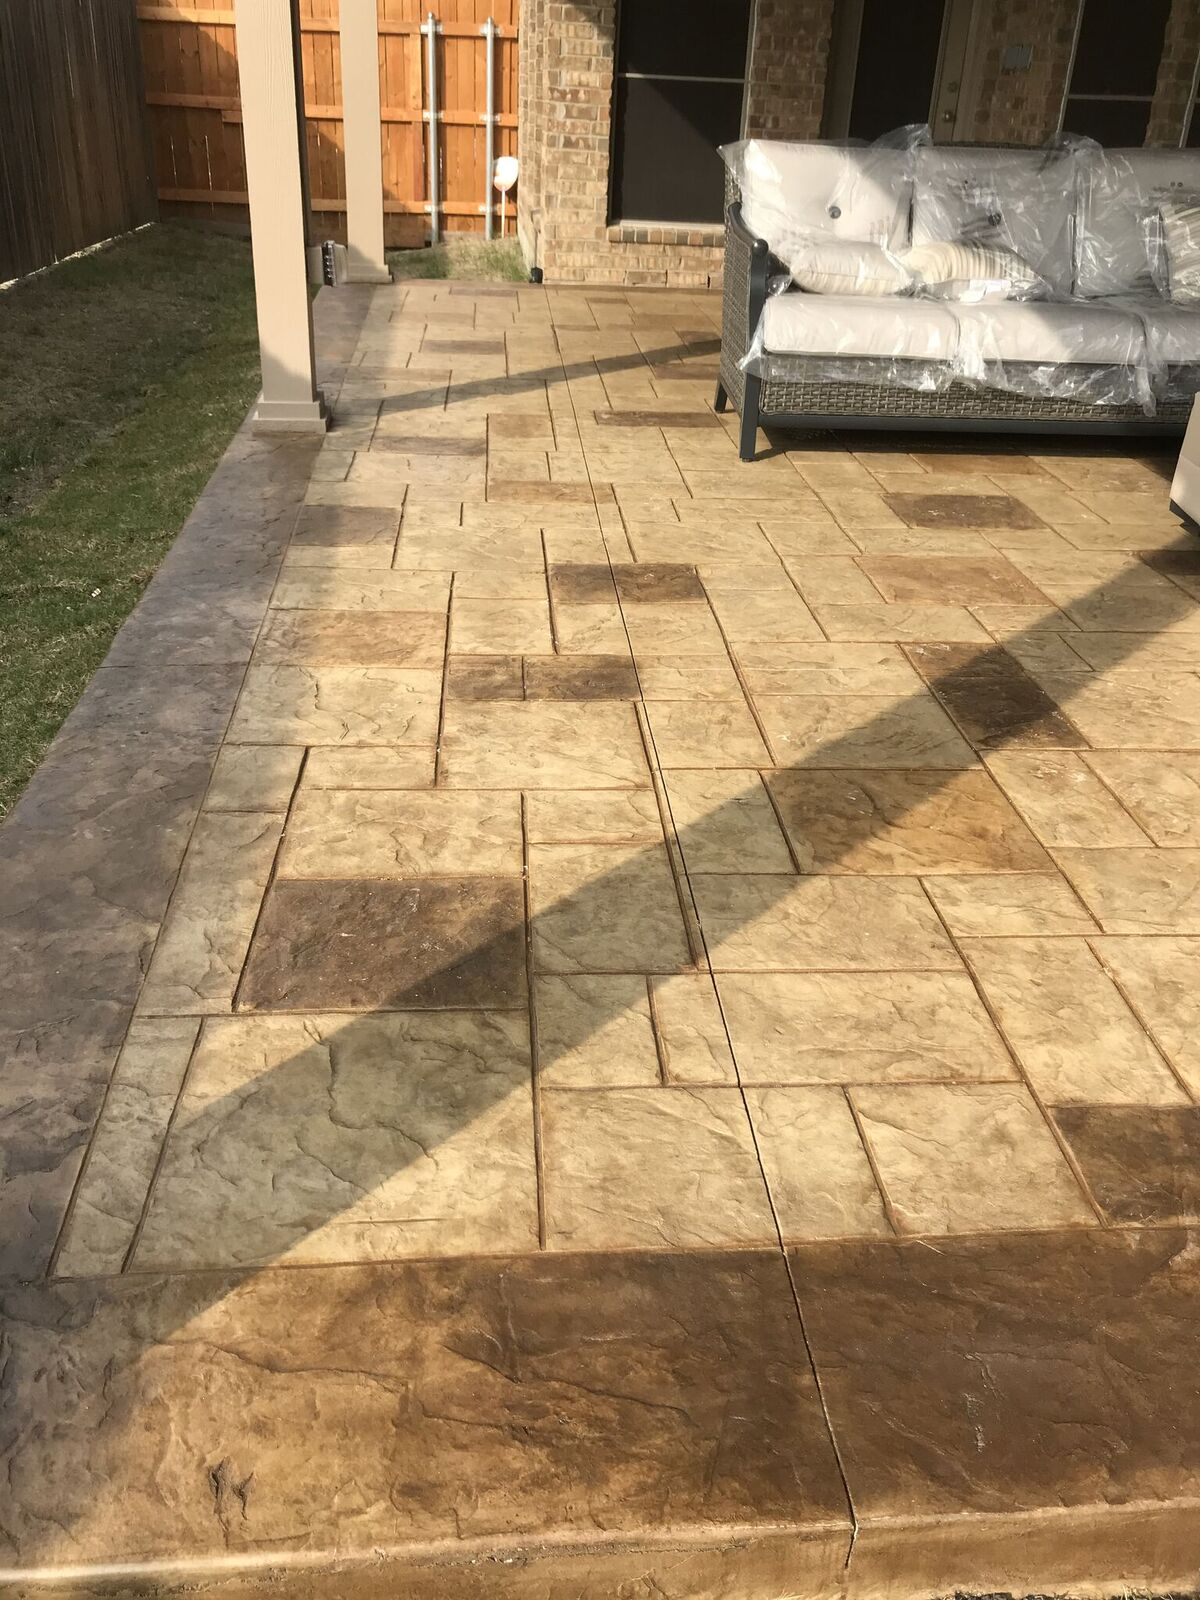 We-added-a-stunning-stain-and-stamp-overlay-to-the-concrete-patio